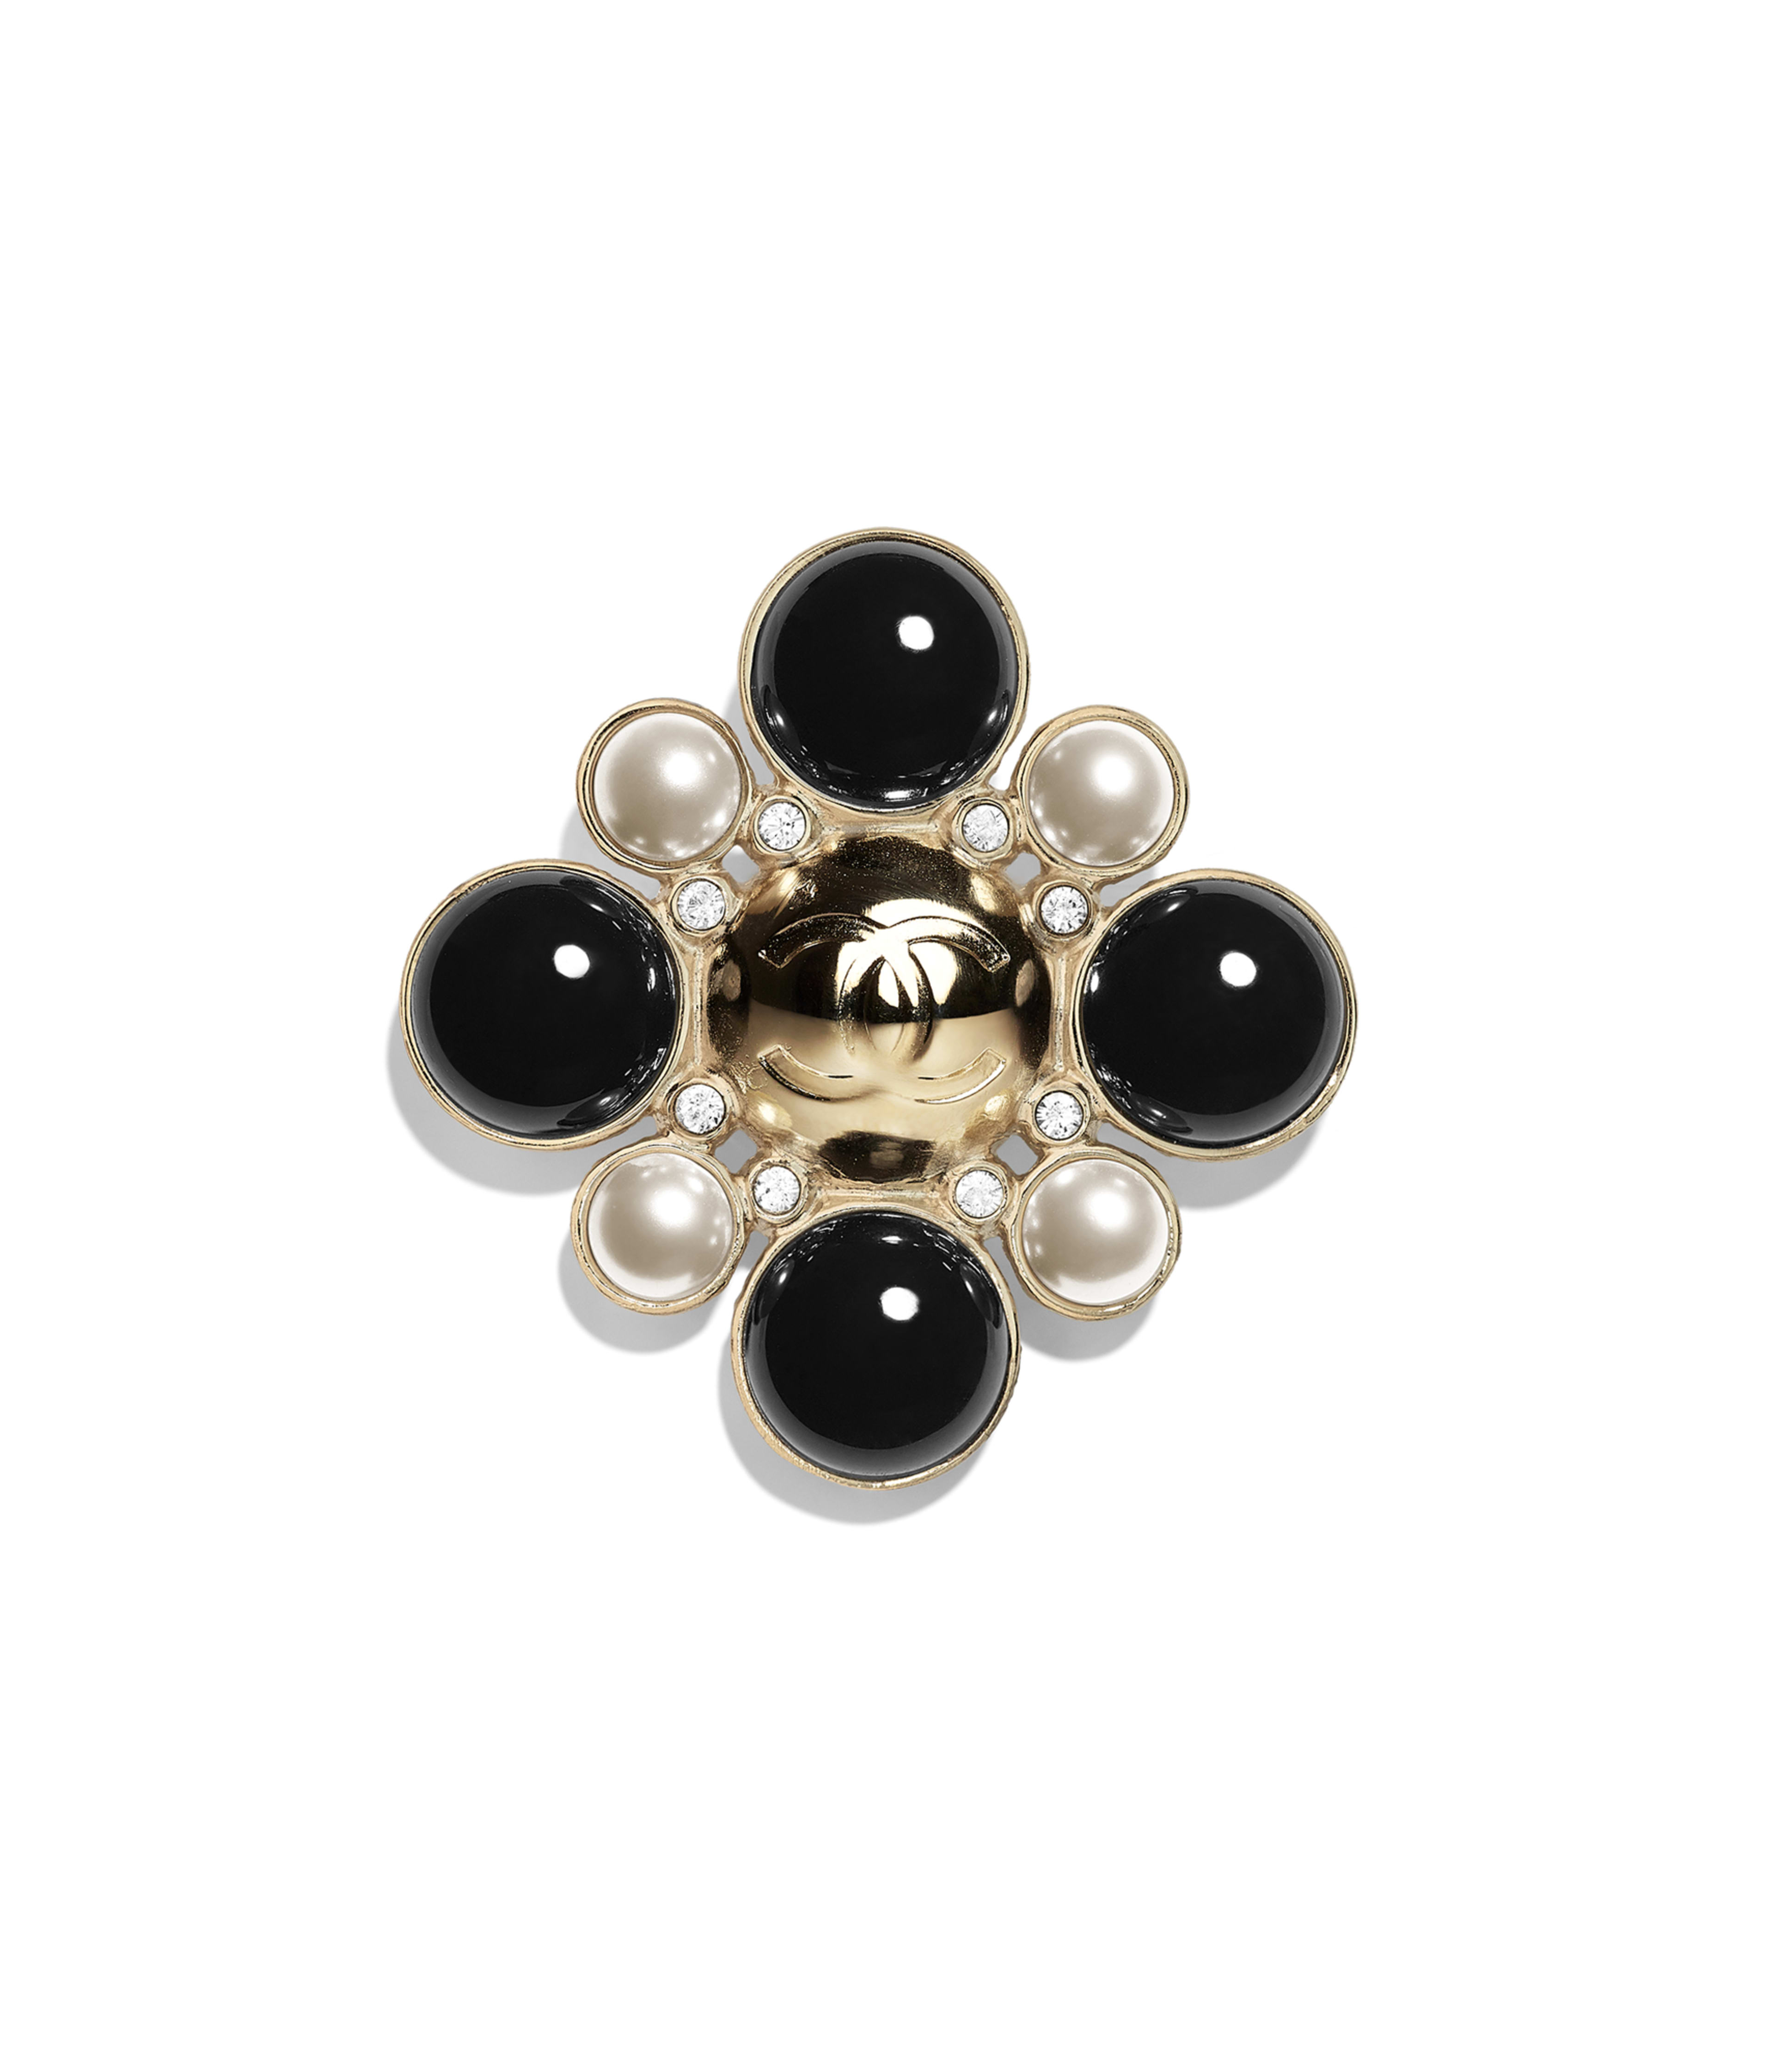 aae113e503e Brooch Metal, Glass Pearls, Imitation Pearls & Strass, Gold, Pearly White,  Black & Crystal Ref. AB2362Y47807Z9232